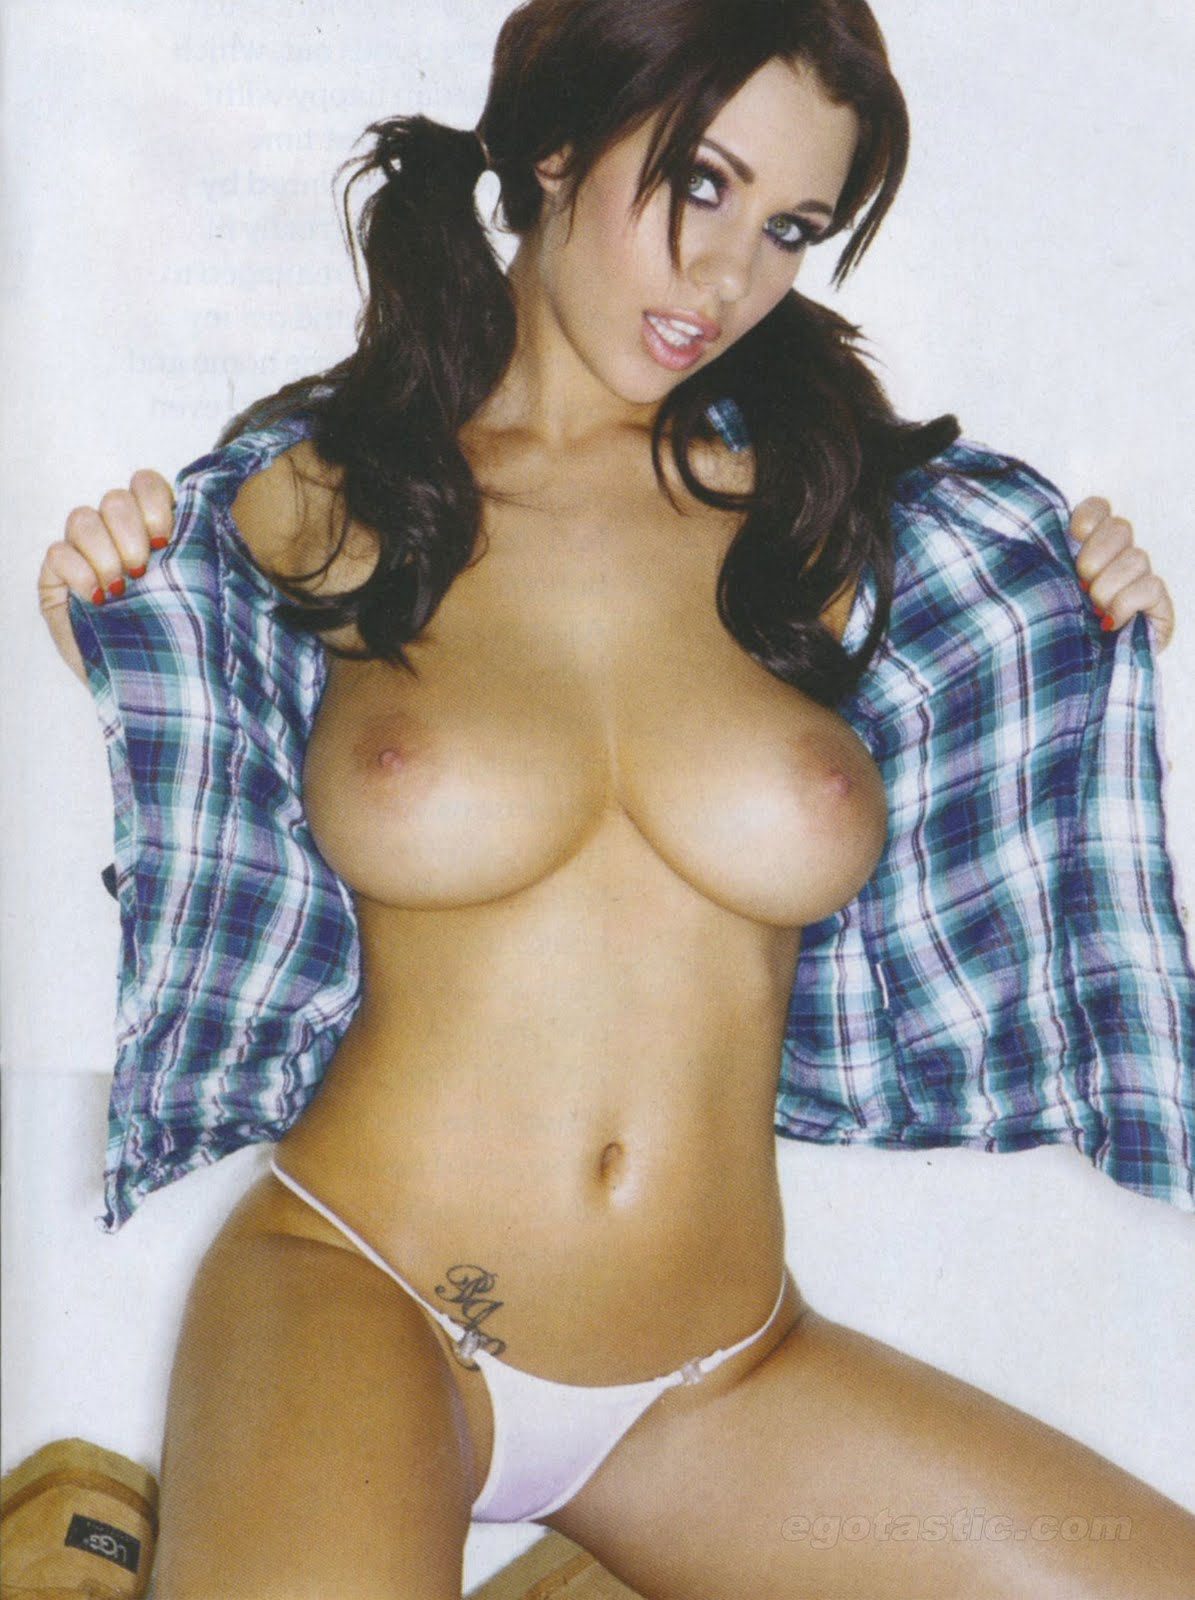 Are not Holly peers pussy excellent answer